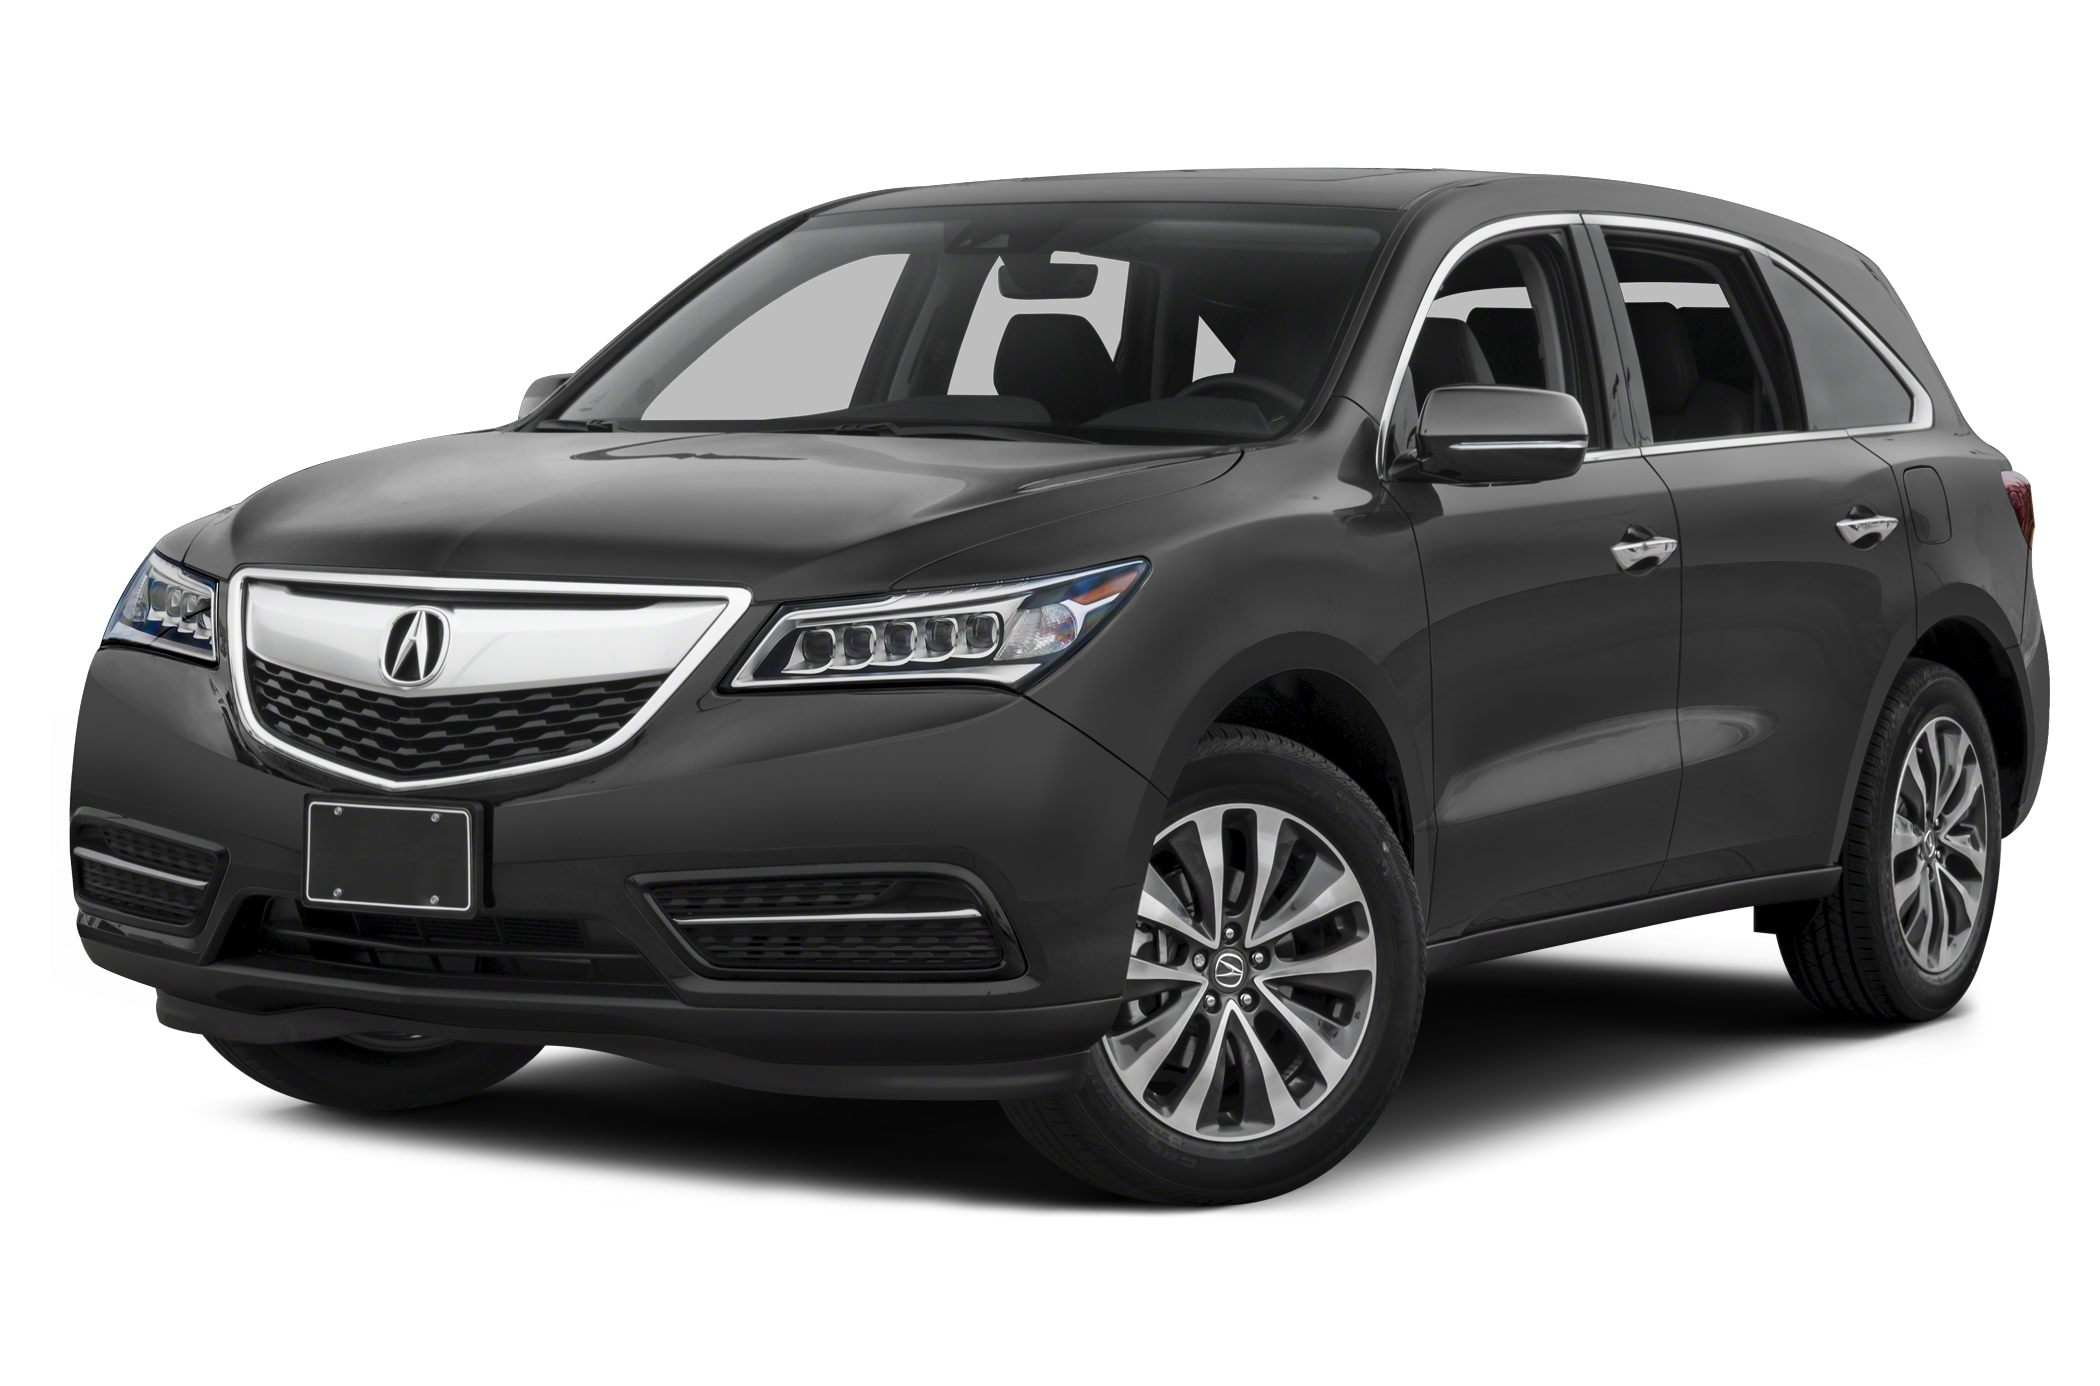 2016 Acura MDX 35 Technology Regal Honda means business Right SUV Right price If youre lookin